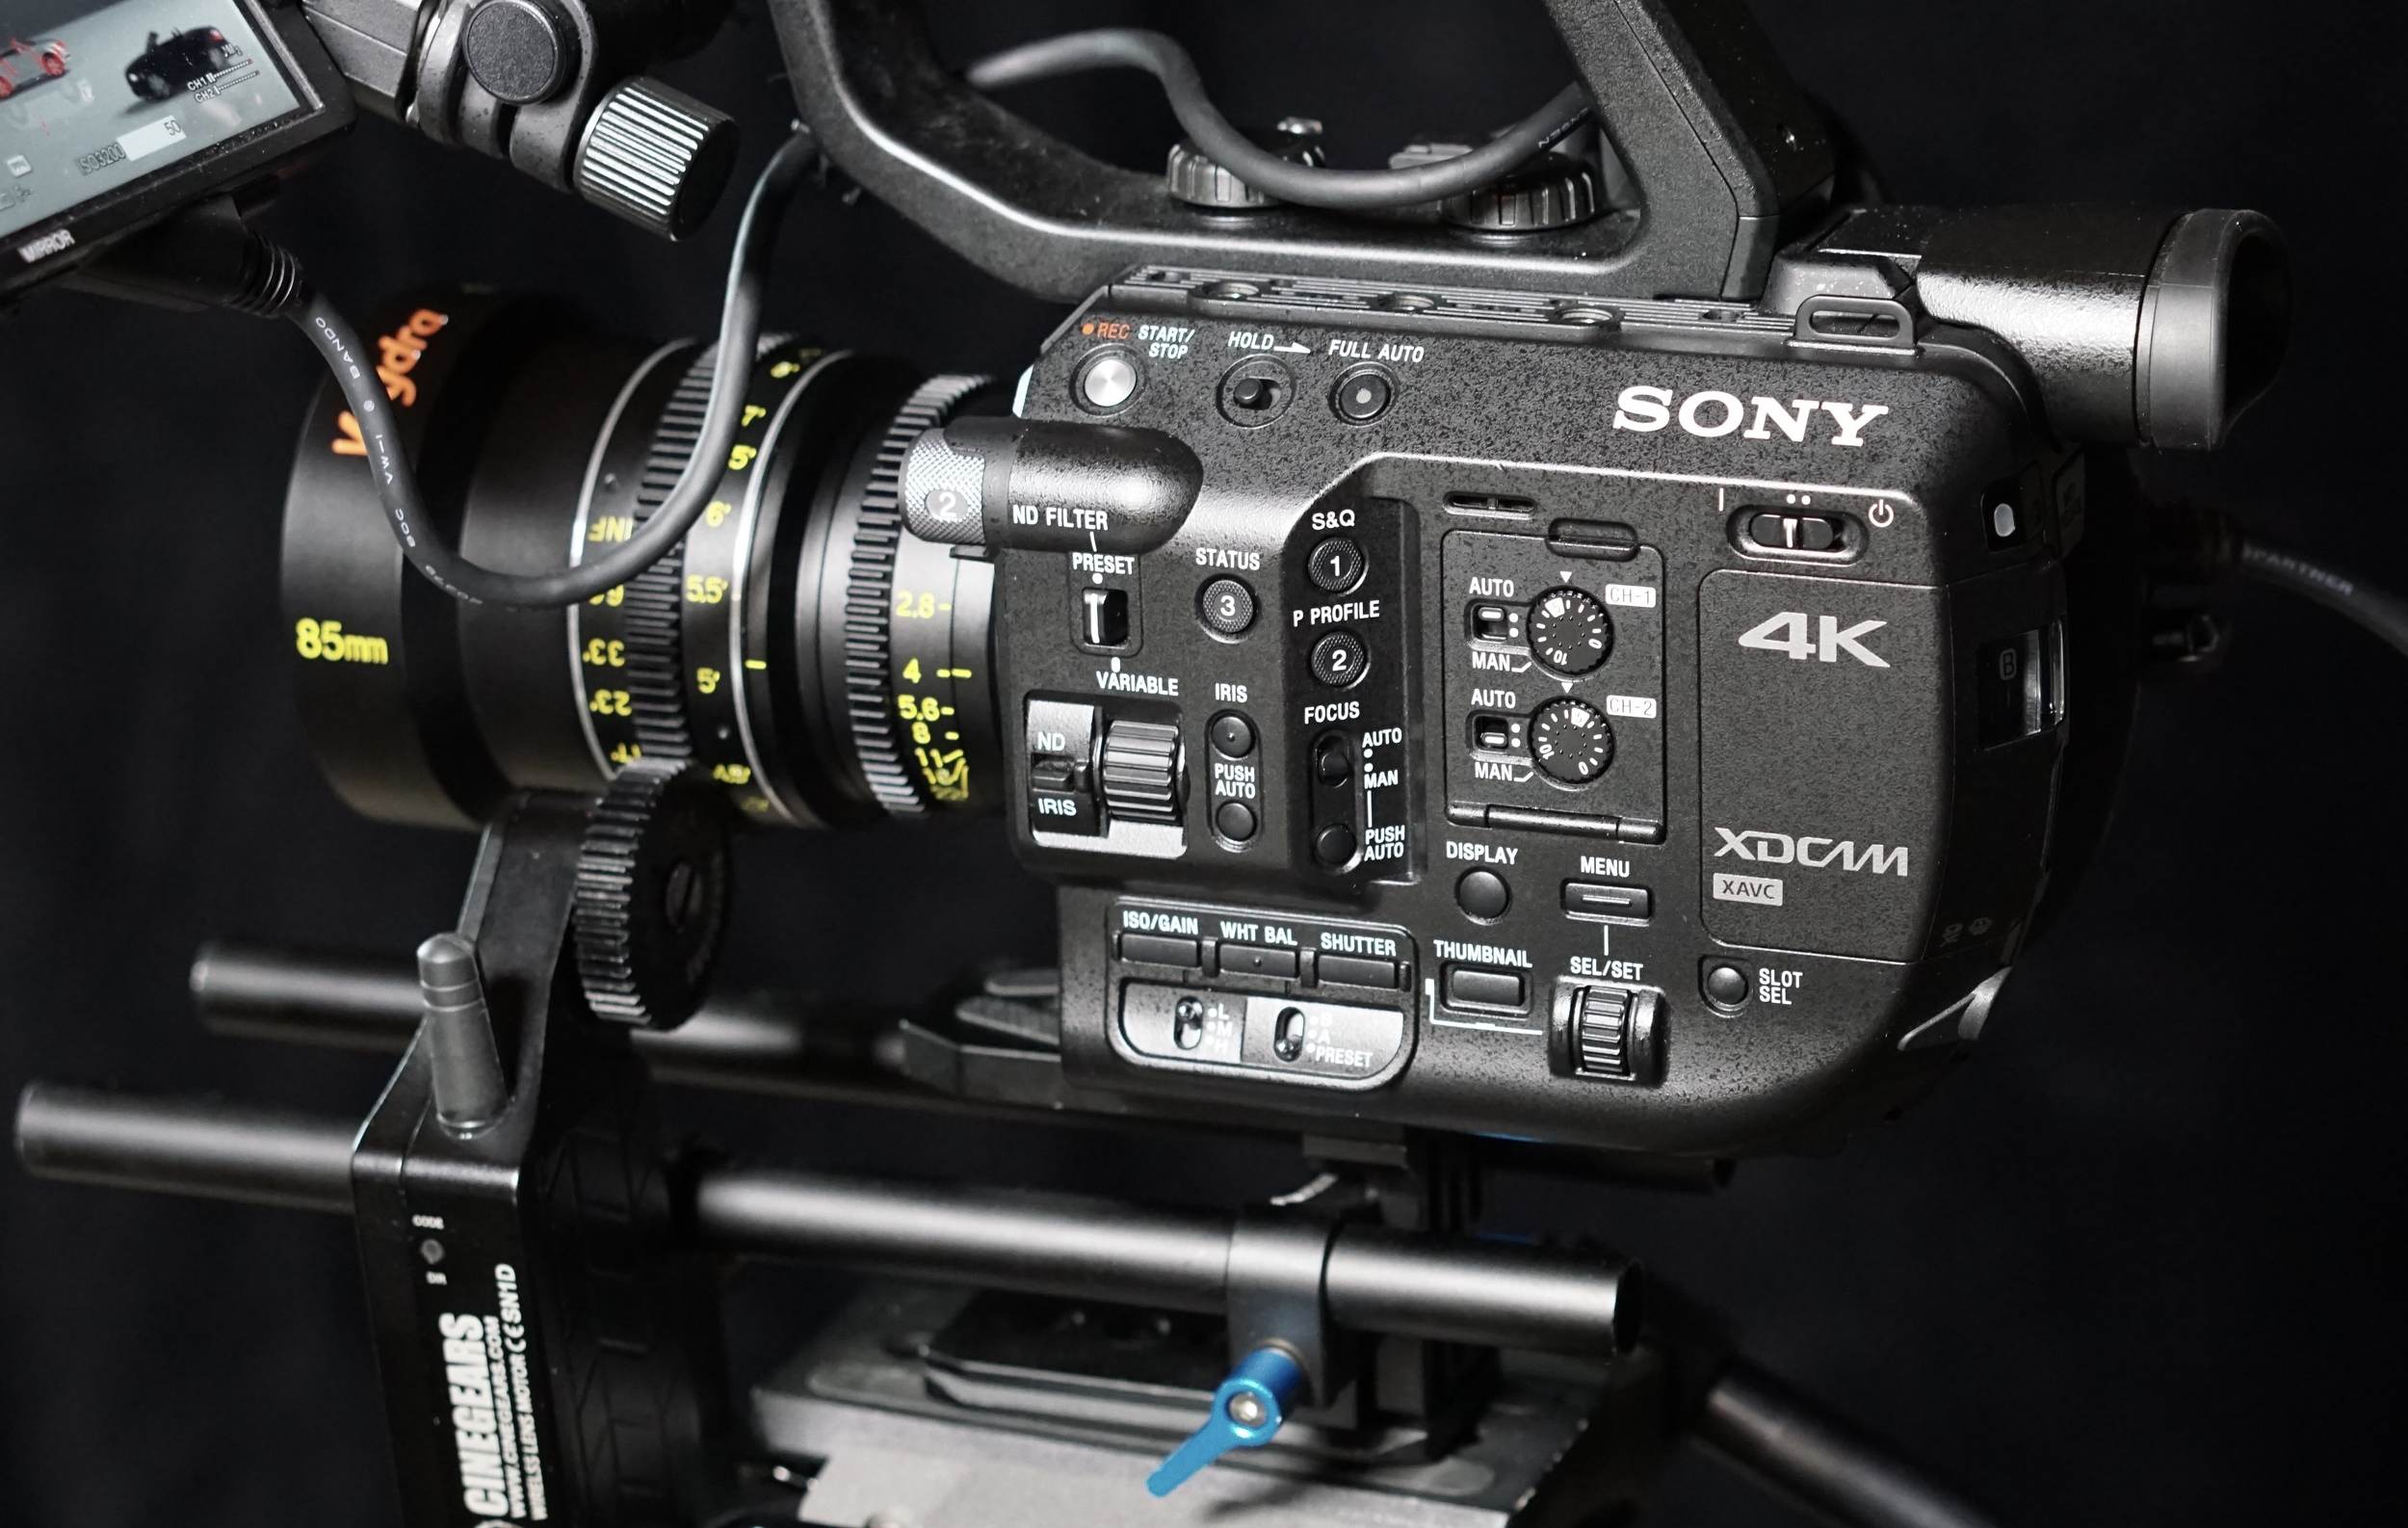 Cinegears  attached to  Veydra 85mm T2.2 Mini-Prime in Sony e-mount  on  Sony FS5  - killer combo. But my no-name cheapie rod system has got to go: it was so bendy that the whole camera shook at the beginning and end of each pull when operating at anything other than slowest speed.